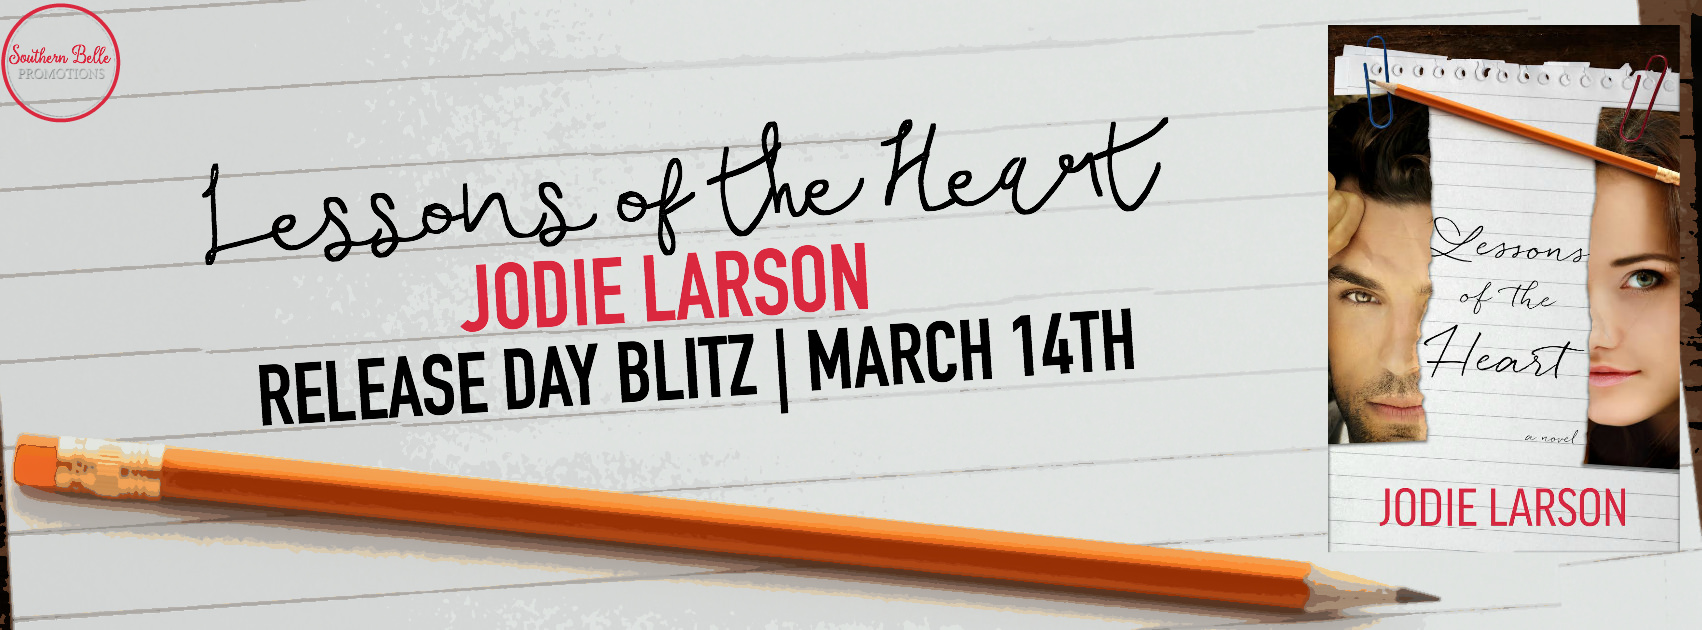 Lessons of the Heart by Jodie Larson – Release Day Blitz